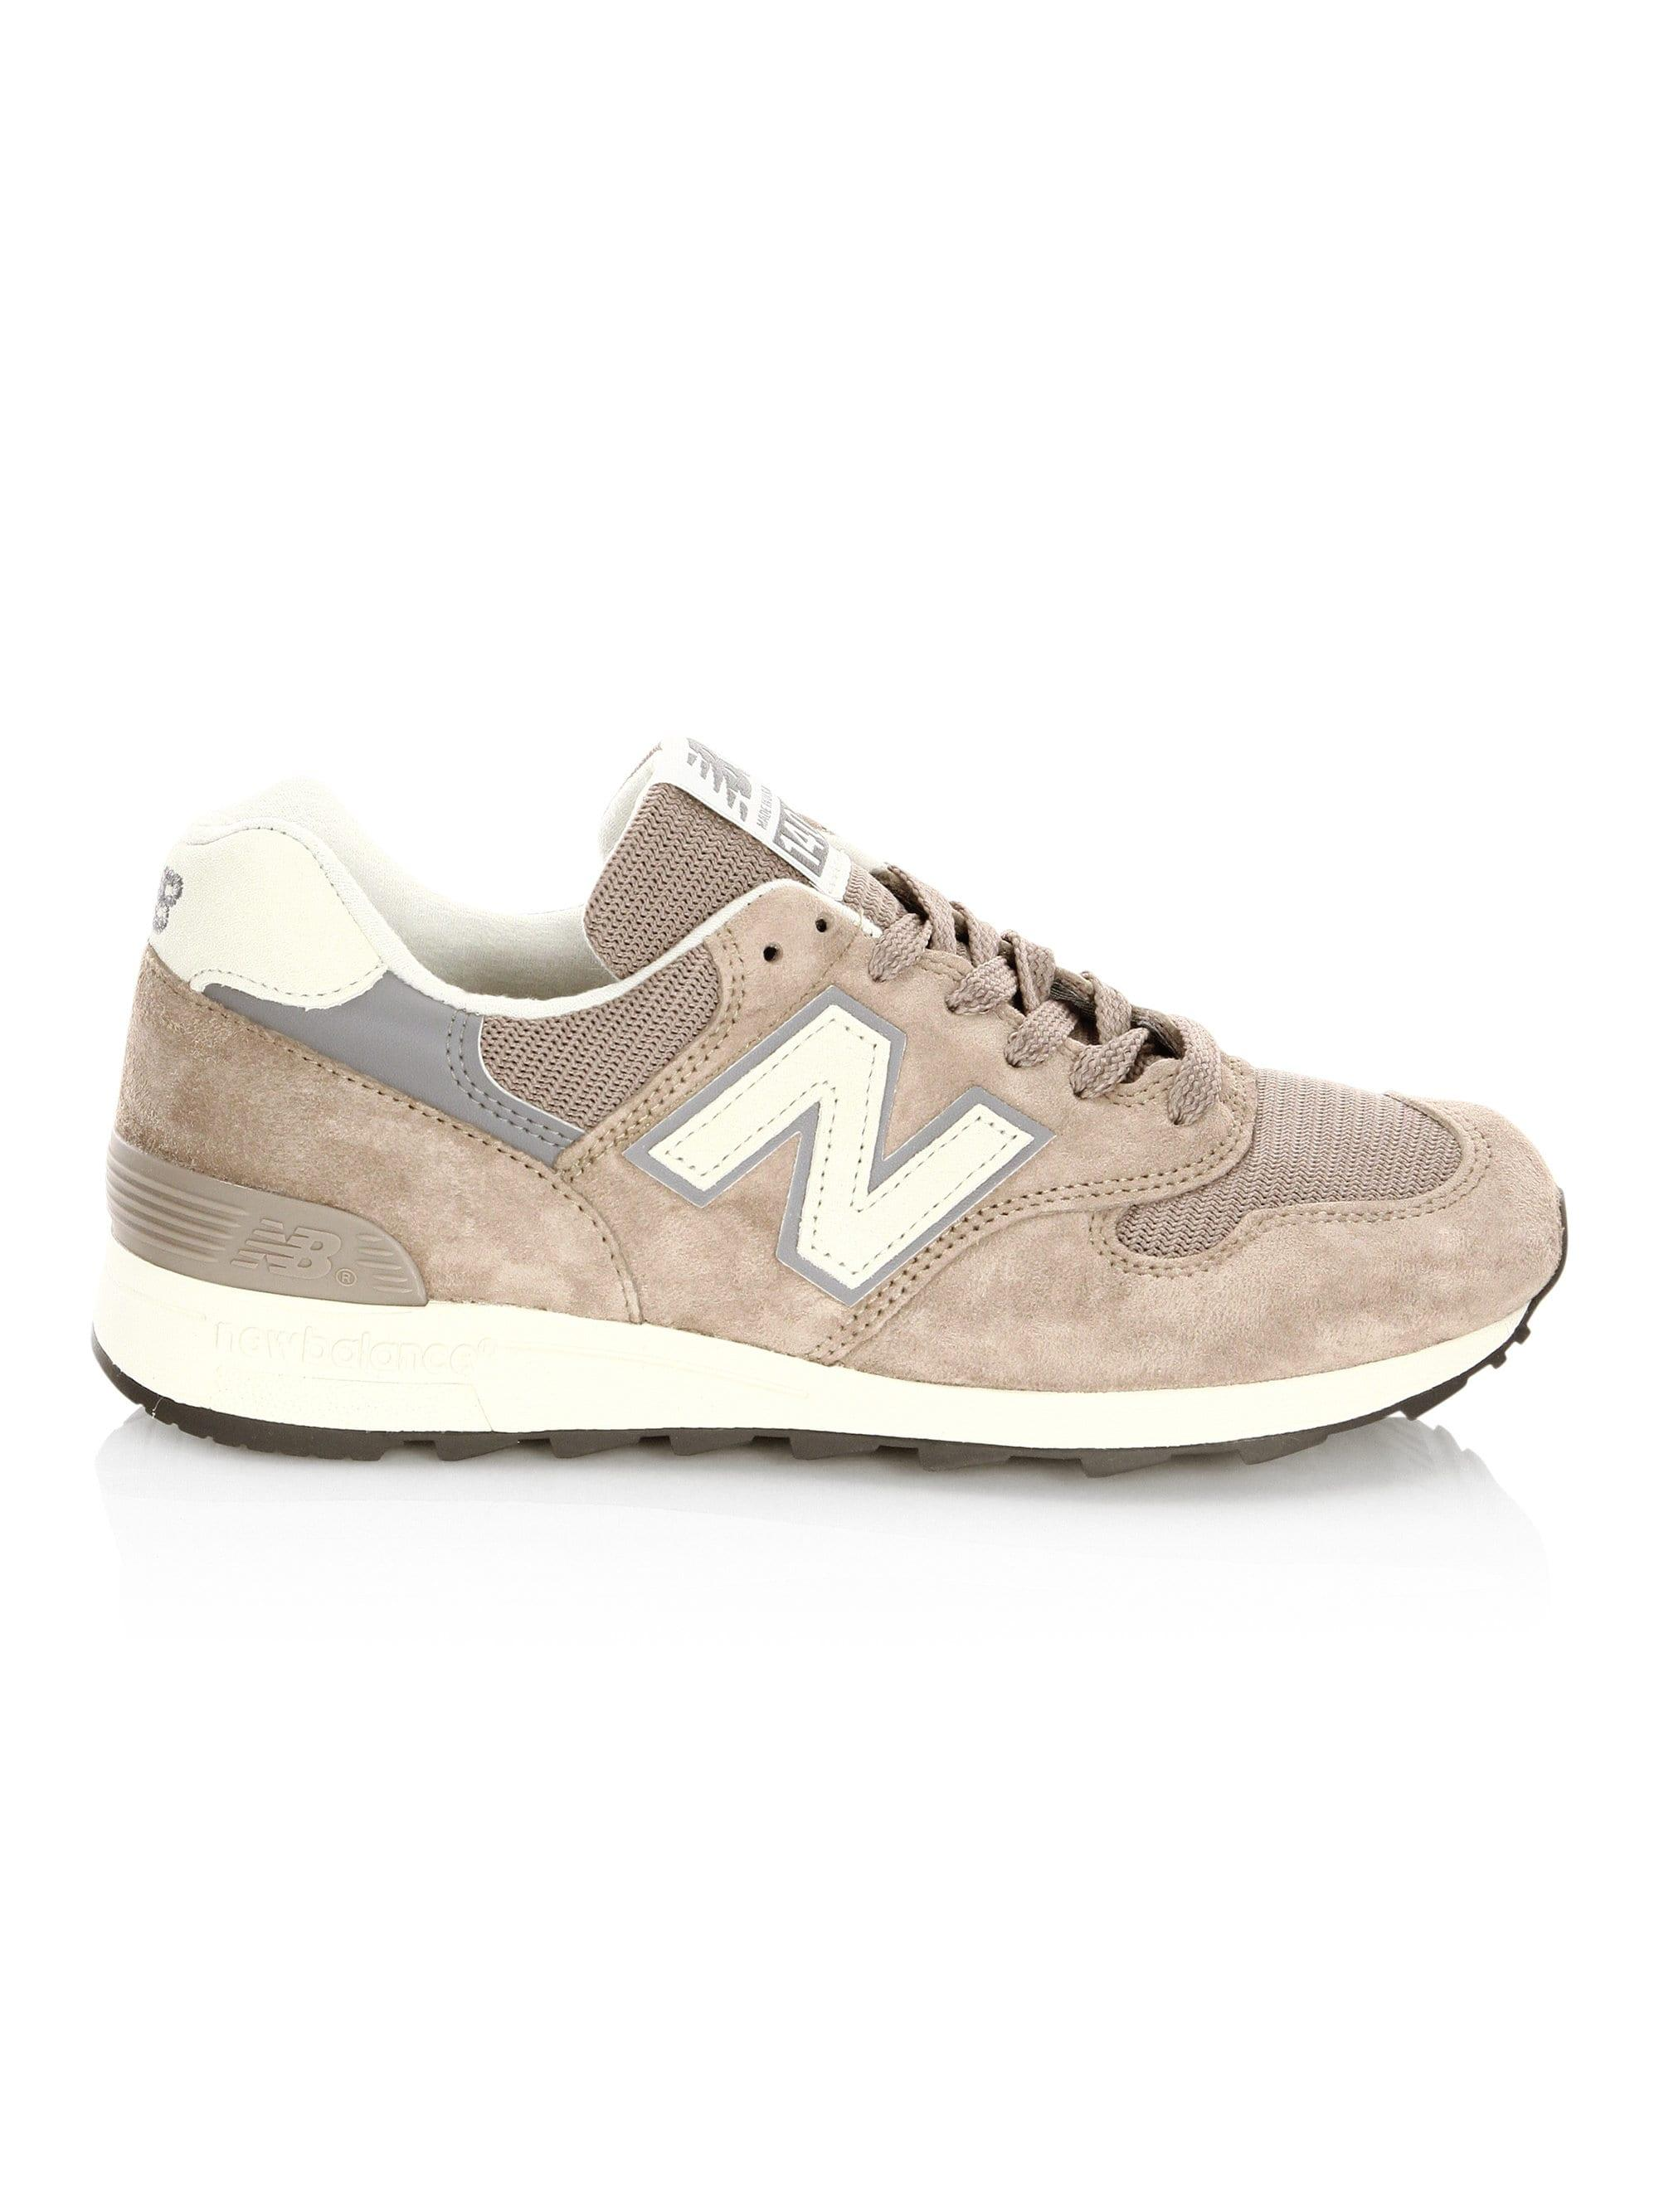 check out 7e55b bbe5c New Balance Men's 1400 Made In Usa Suede Sneakers - Mushroom ...